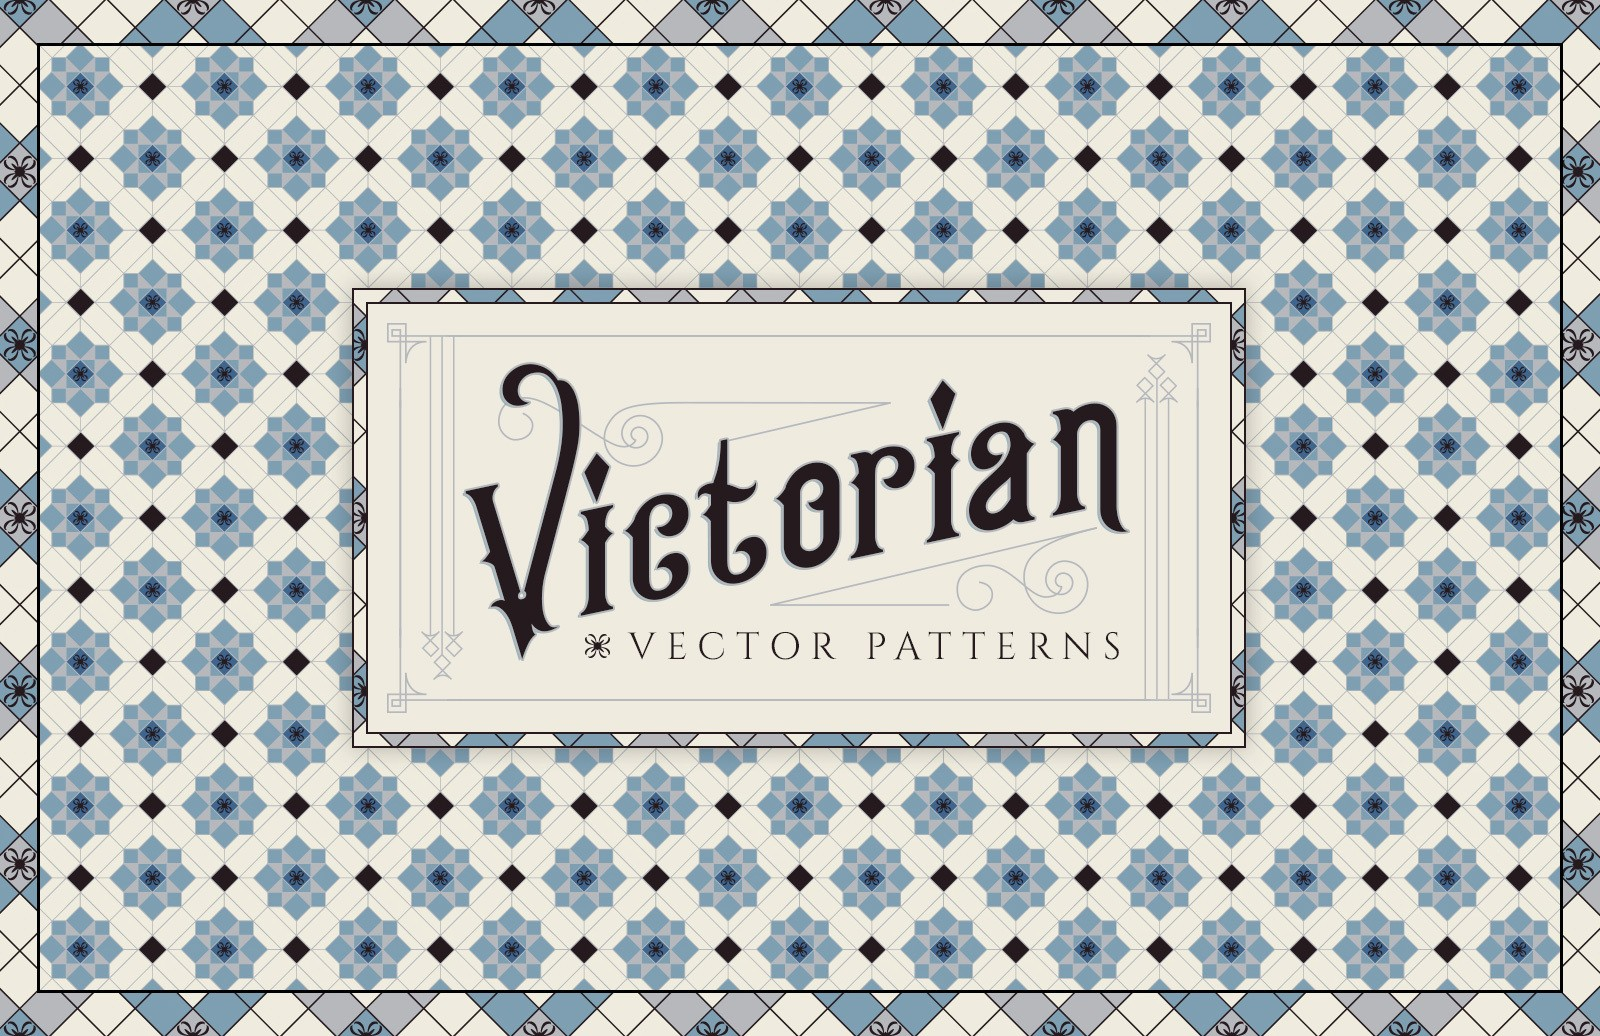 Victorian Vector Patterns Preview 1